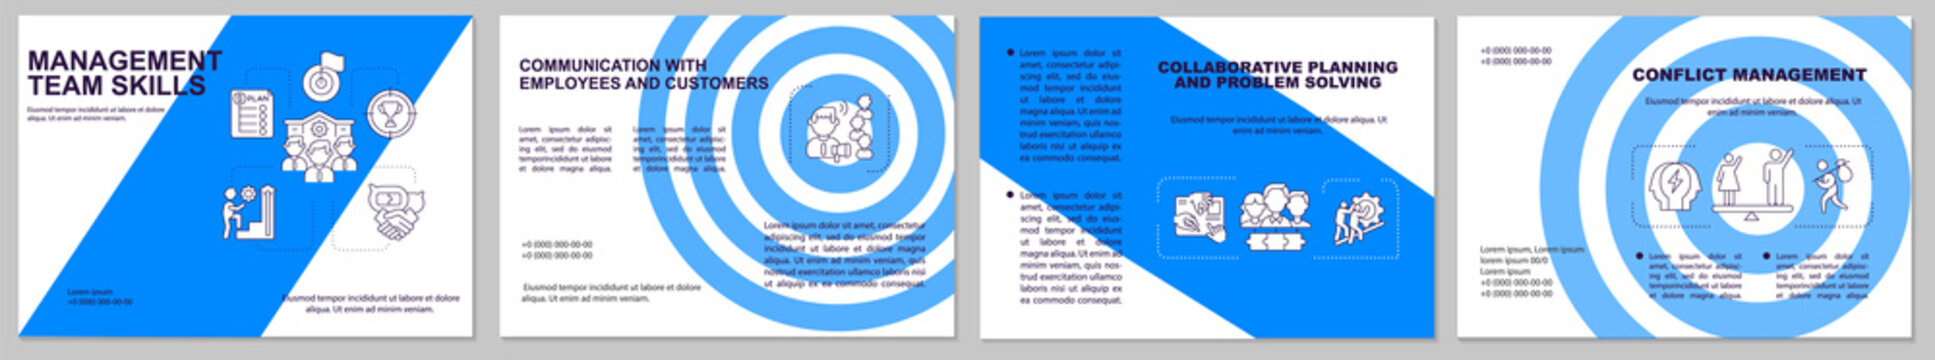 Management team skill brochure template. Collaborative solving problem. Flyer, booklet, leaflet print, cover design with linear icons. Vector layouts for magazines, annual reports, advertising posters